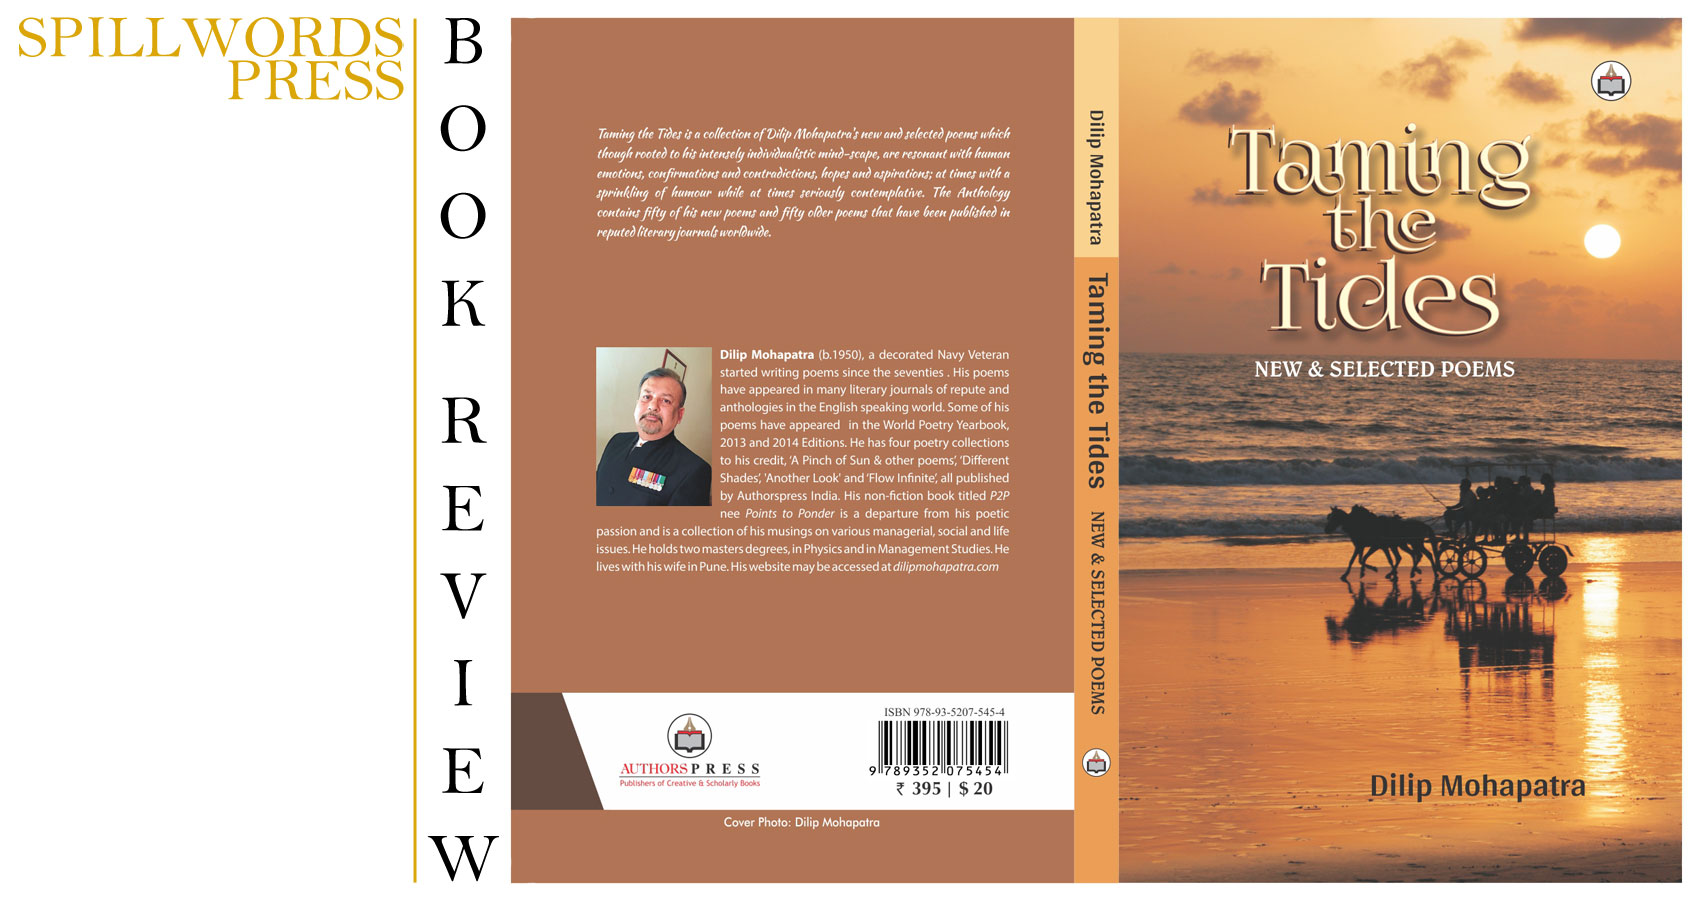 Book Review - 'Taming the Tides', a book of poetry by Dilip Mohapatra at Spillwords.com